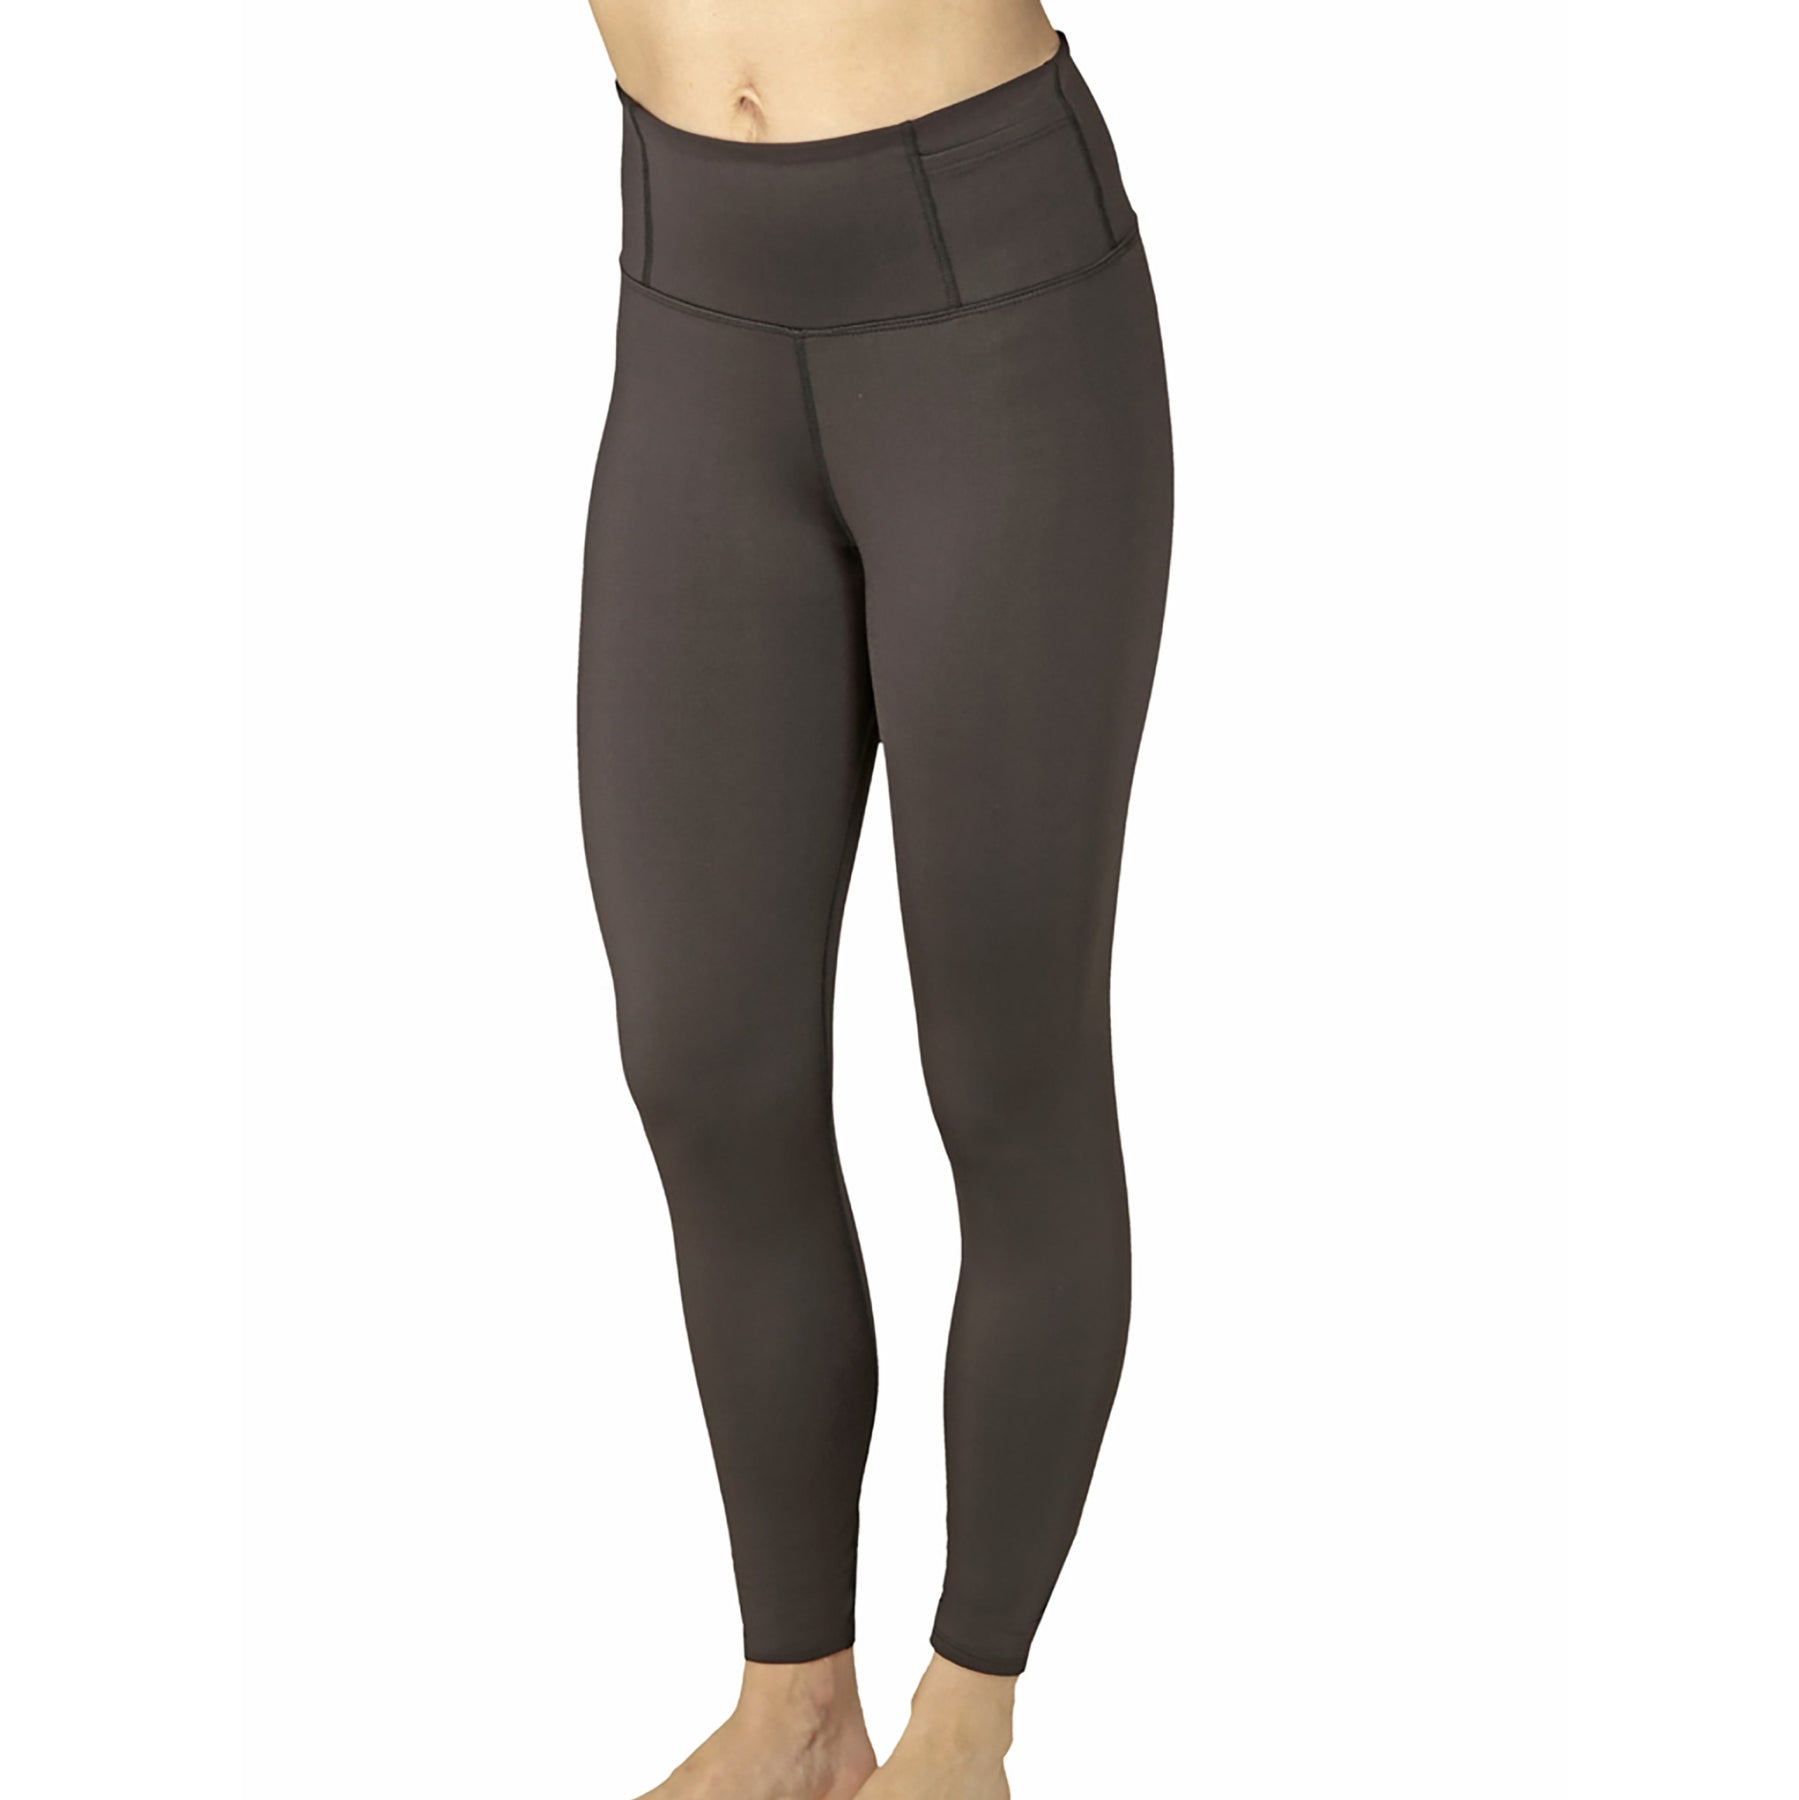 Chami Base Layer Compression Waist Legging Snow Angel